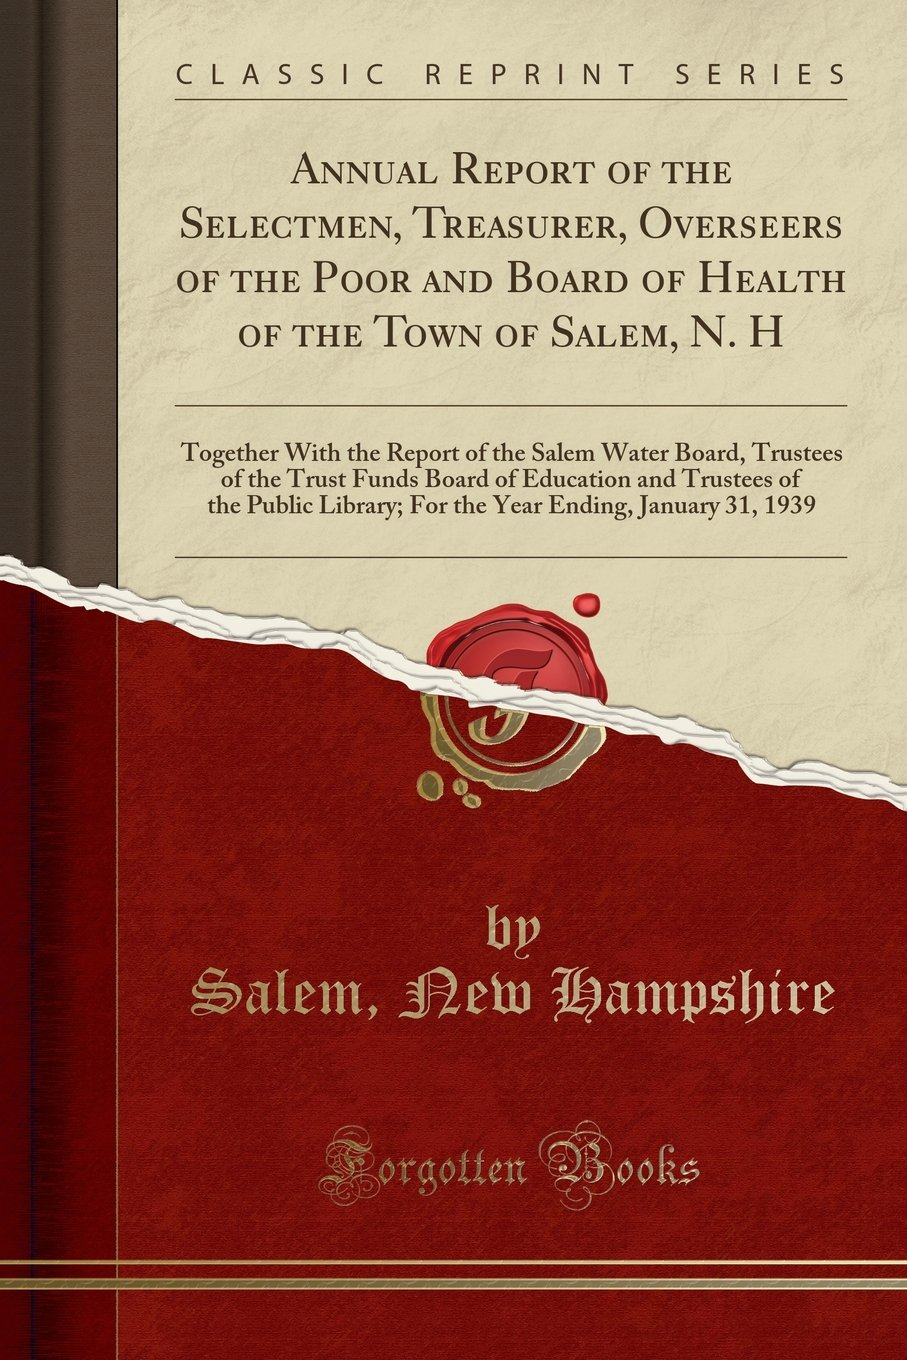 Annual Report of the Selectmen, Treasurer, Overseers of the Poor and Board of Health of the Town of Salem, N. H: Together With the Report of the Salem ... and Trustees of the Public Library; For the PDF